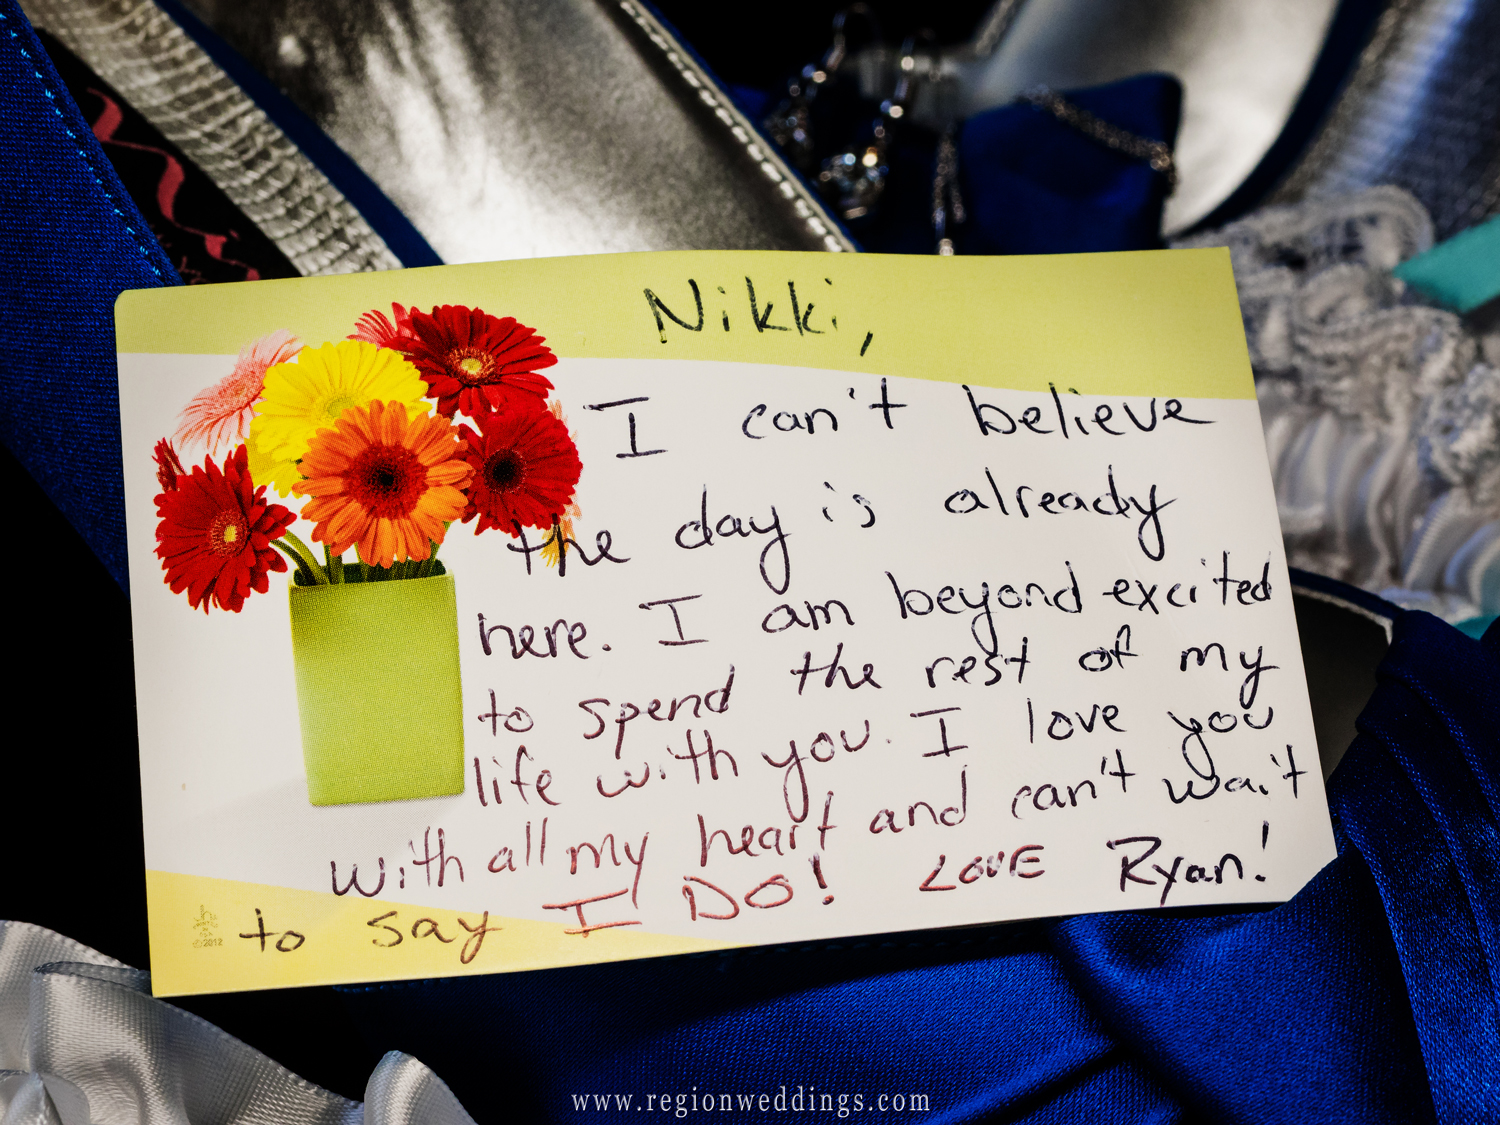 The groom's handwritten love note to his bride to be.